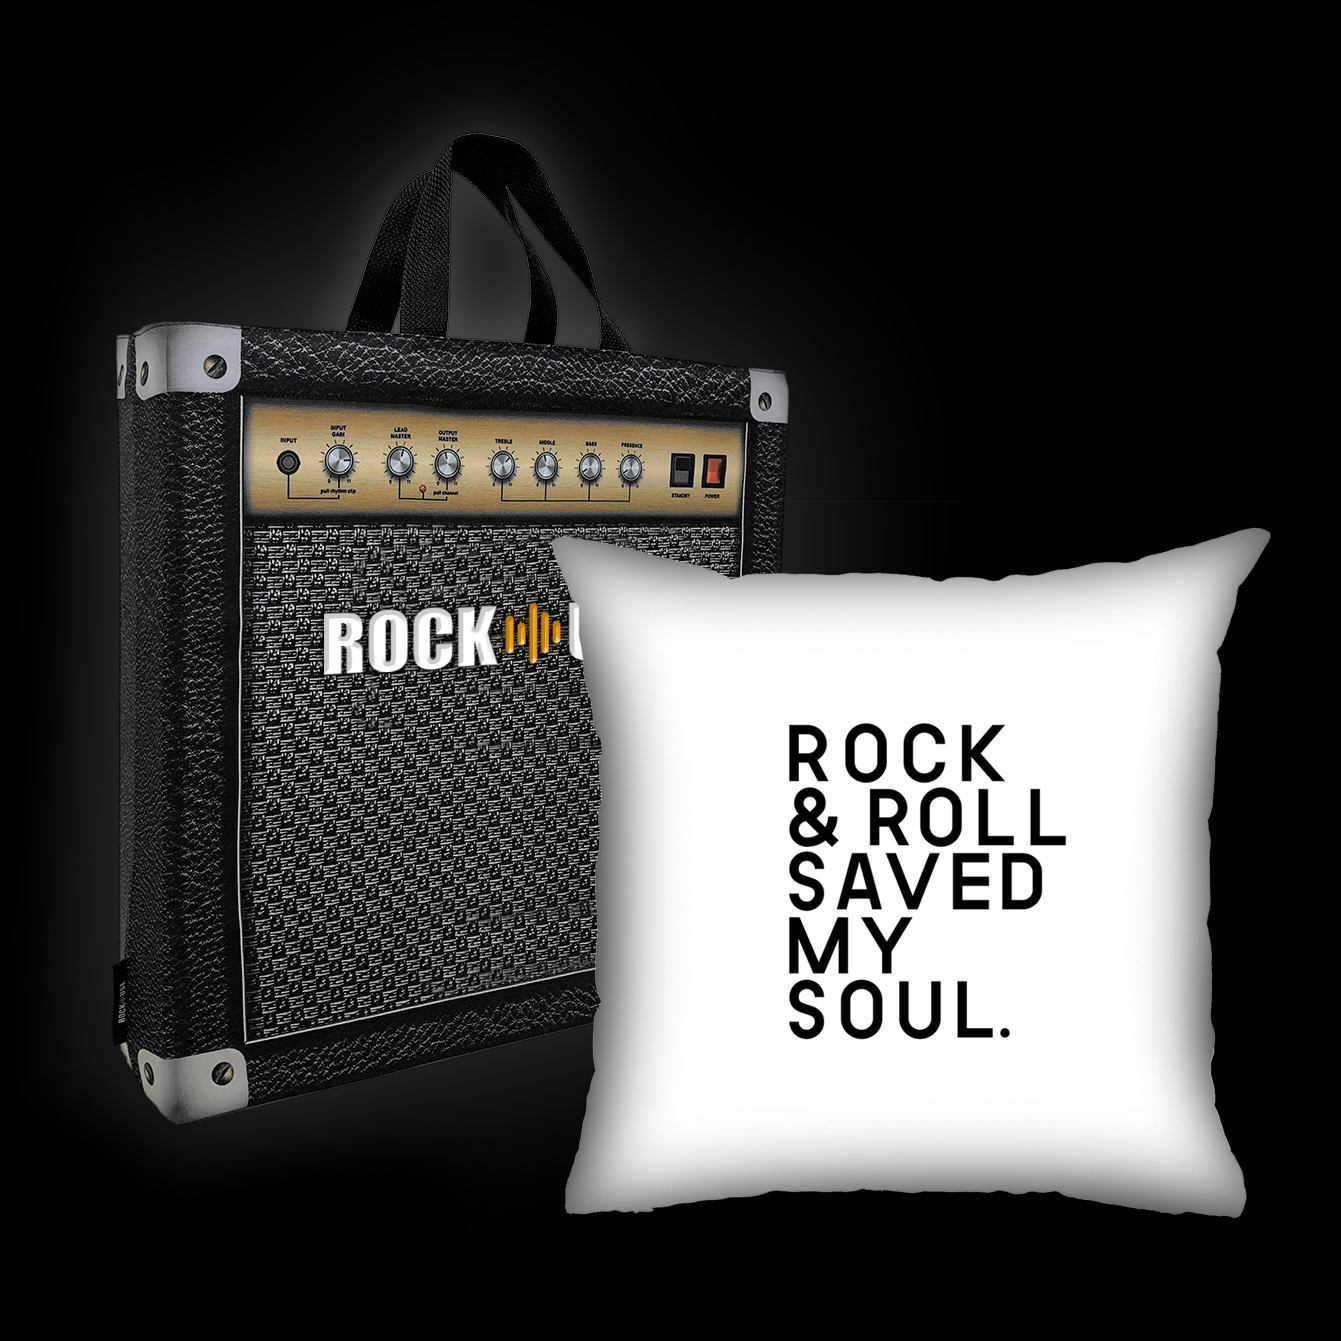 Kit Almofada & Sacola Rock Use - Rock & Roll Saved My Soul - Branca